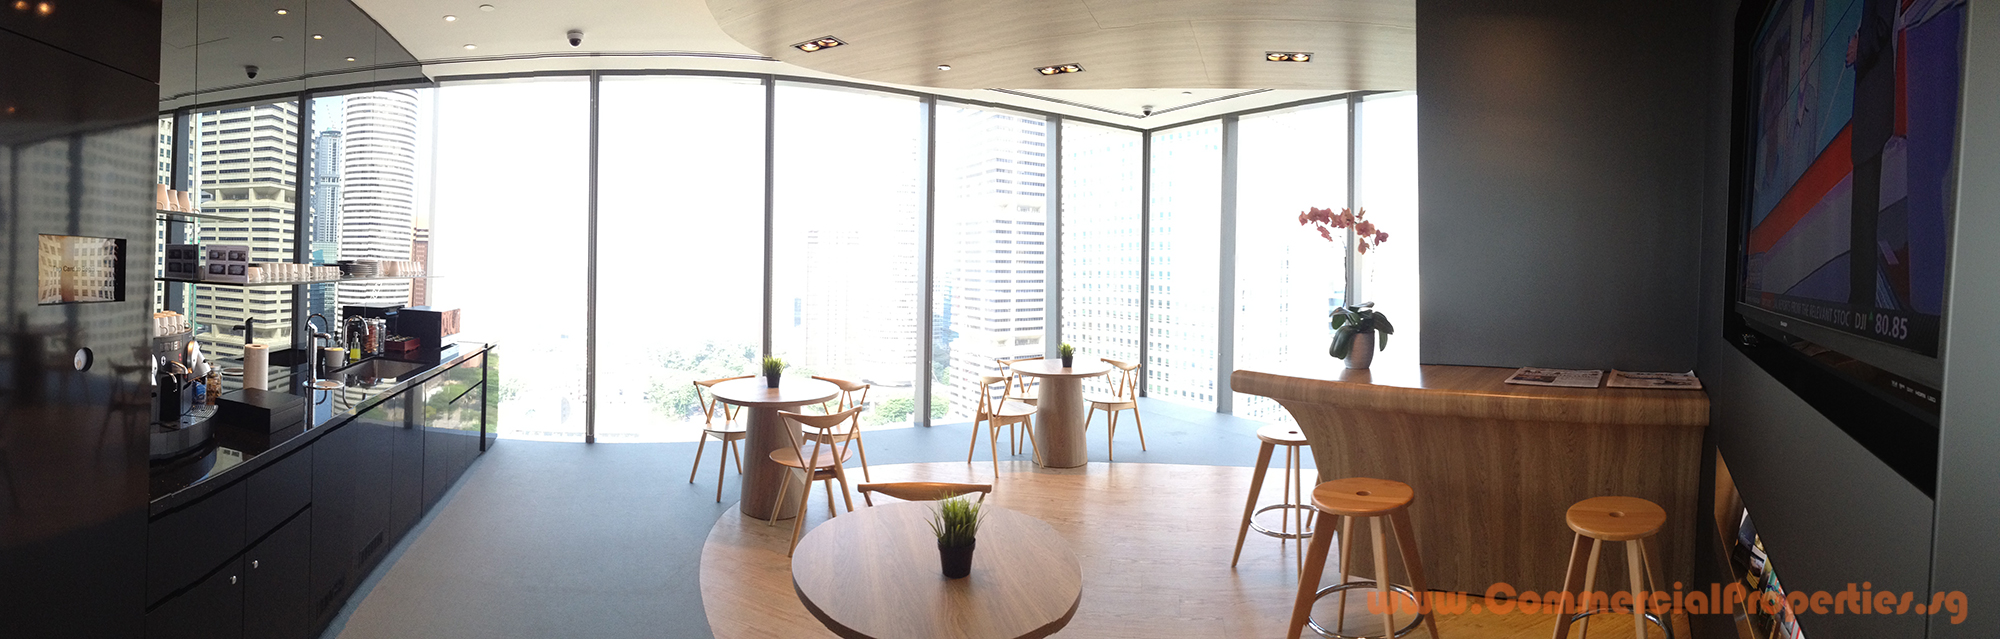 Serviced Office Space Singapore Ready To Start Operation Anytime